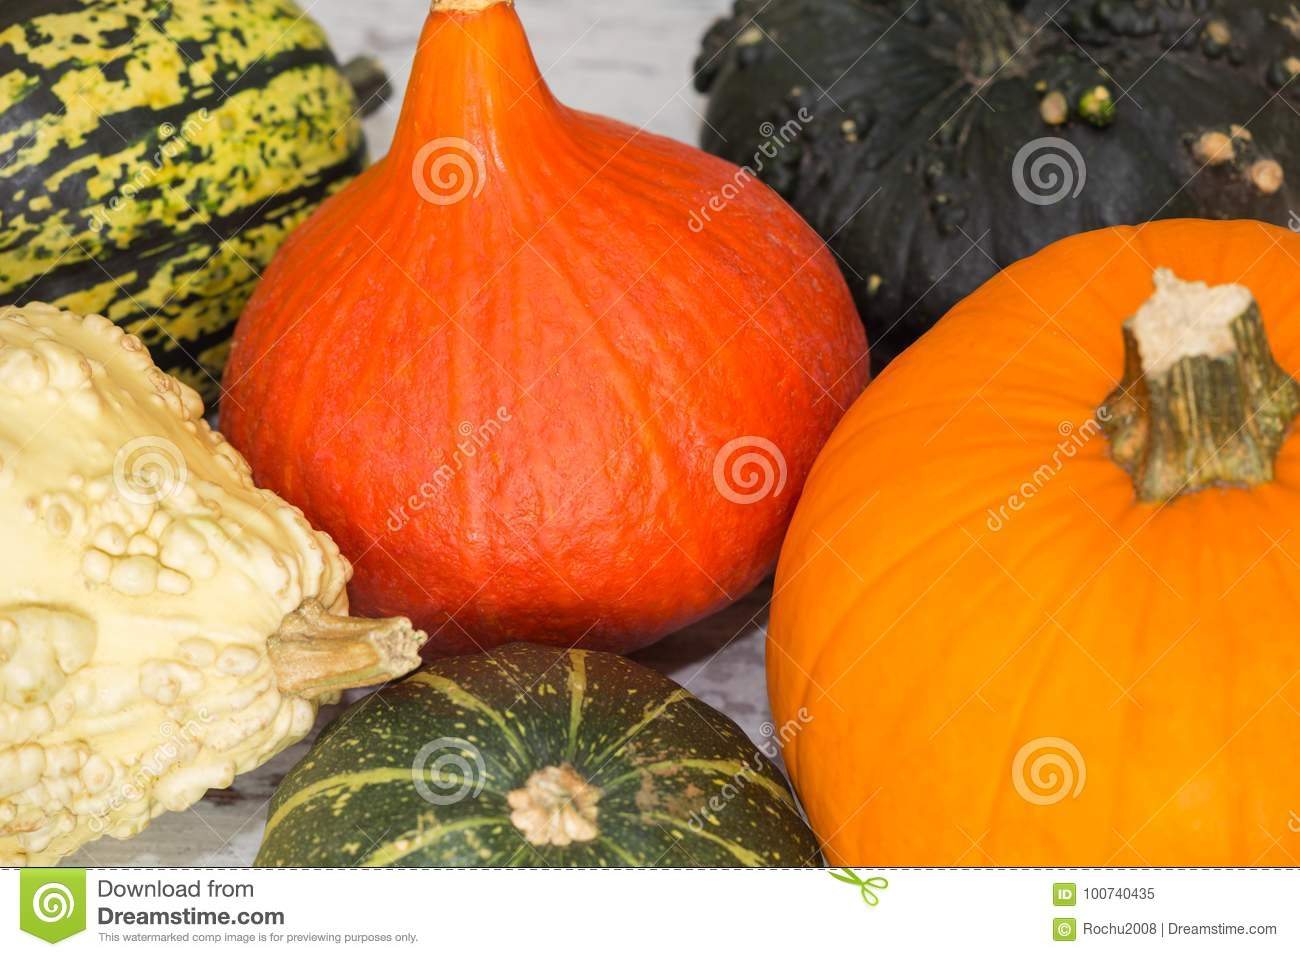 View Of The Pumpkins Different Types Good For Eat And Decorative